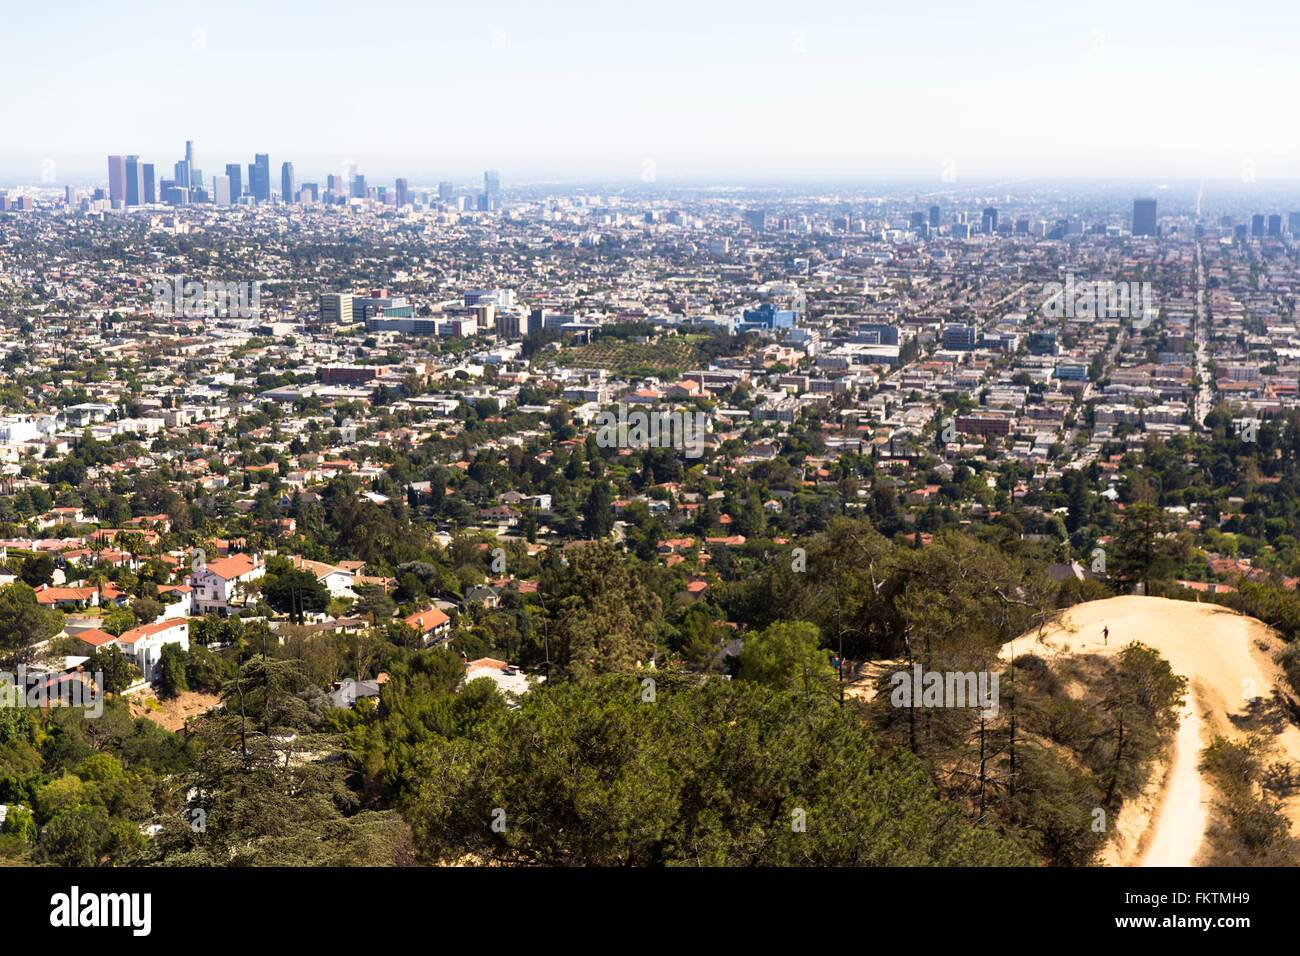 Elevated view of urban sprawl, Los Angeles, California, USA - Stock Image